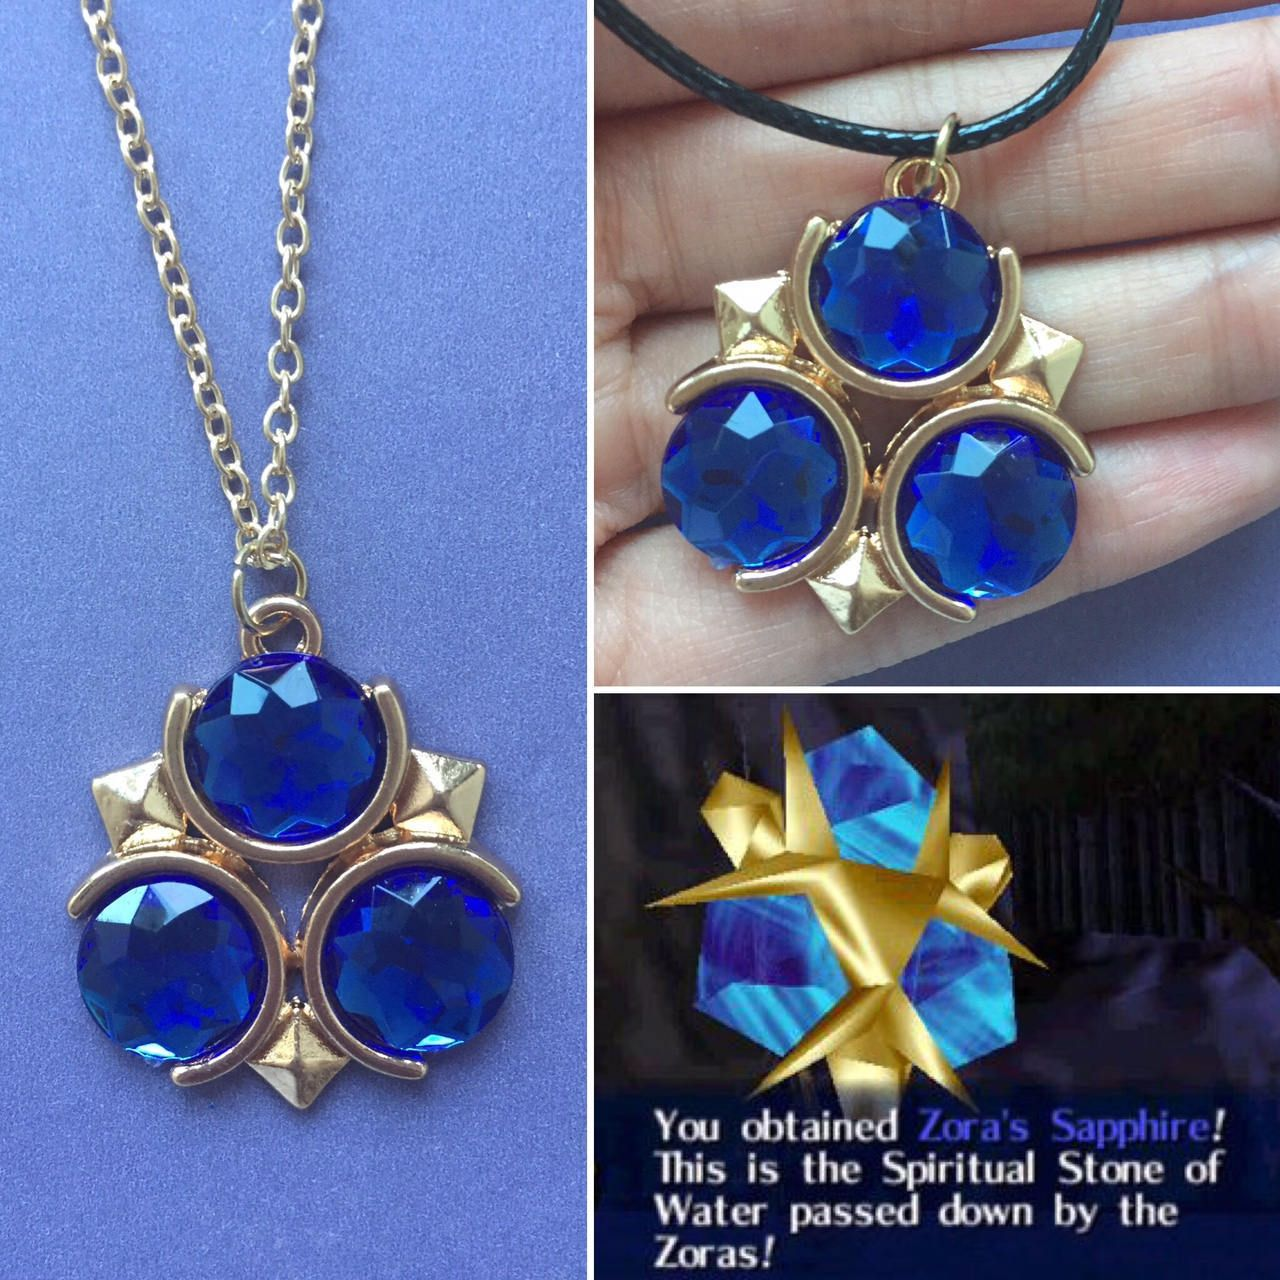 Legend of Zelda Charms made by Mikarya -